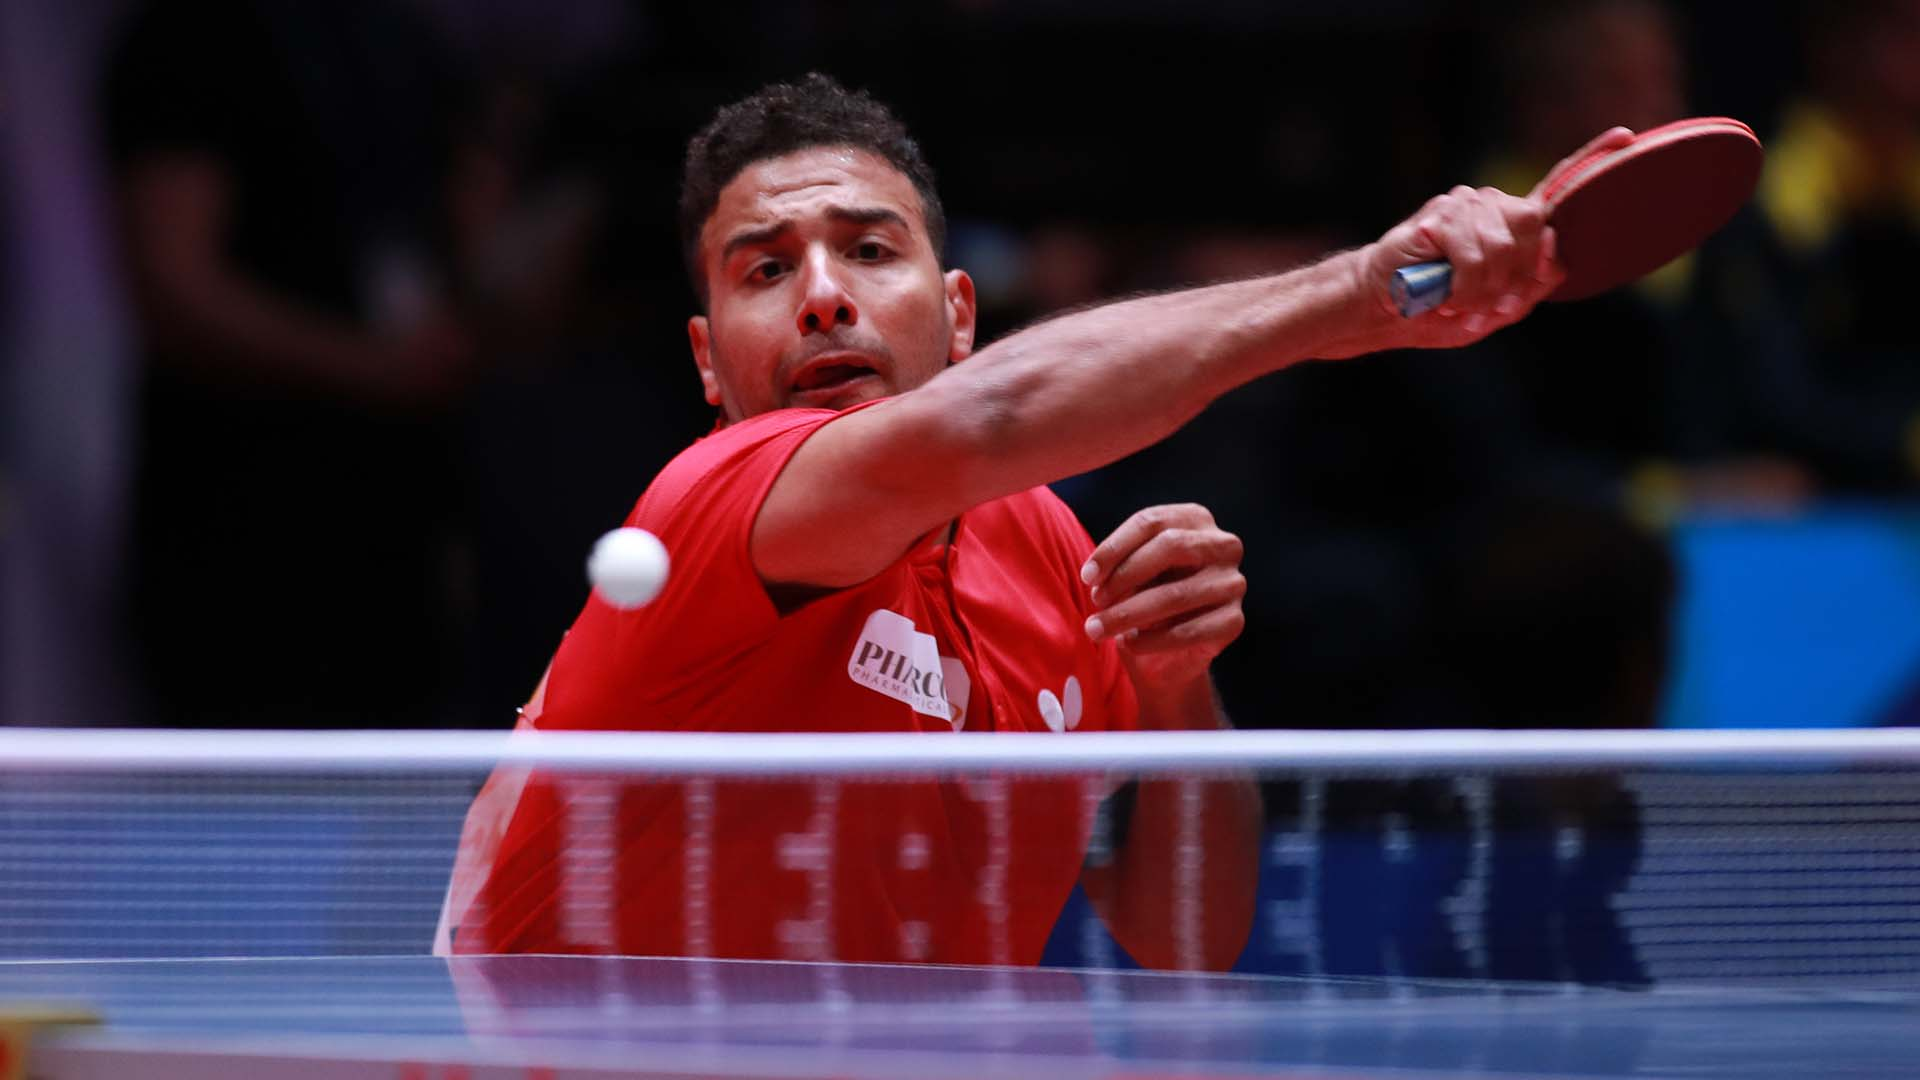 Assar_29_04_18- photo courtesy of ITTF- remy gros